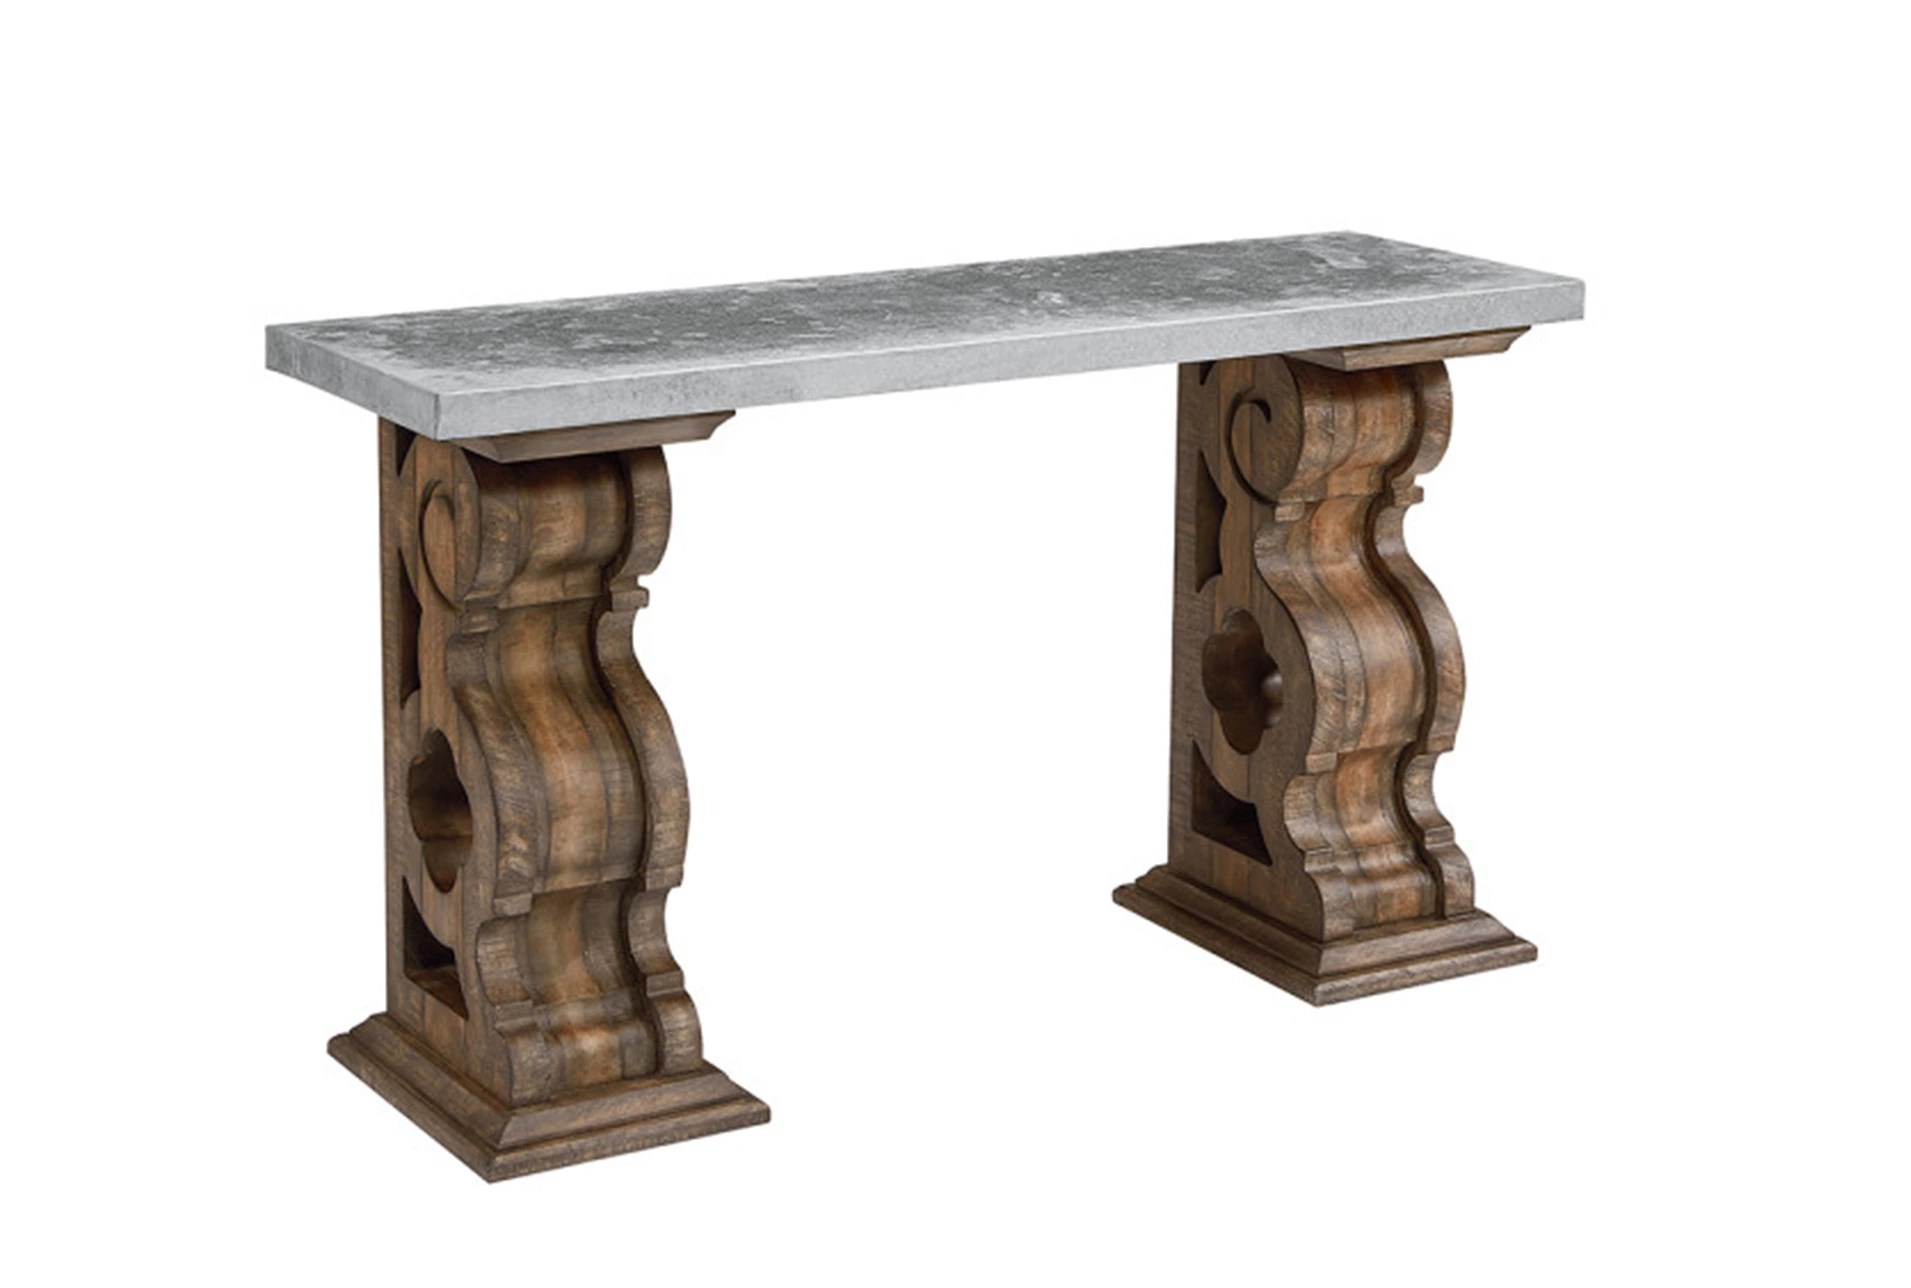 sofa table size corner removable covers uk magnolia home double pedestal with zinc top by joanna gaines qty 1 has been successfully added to your cart